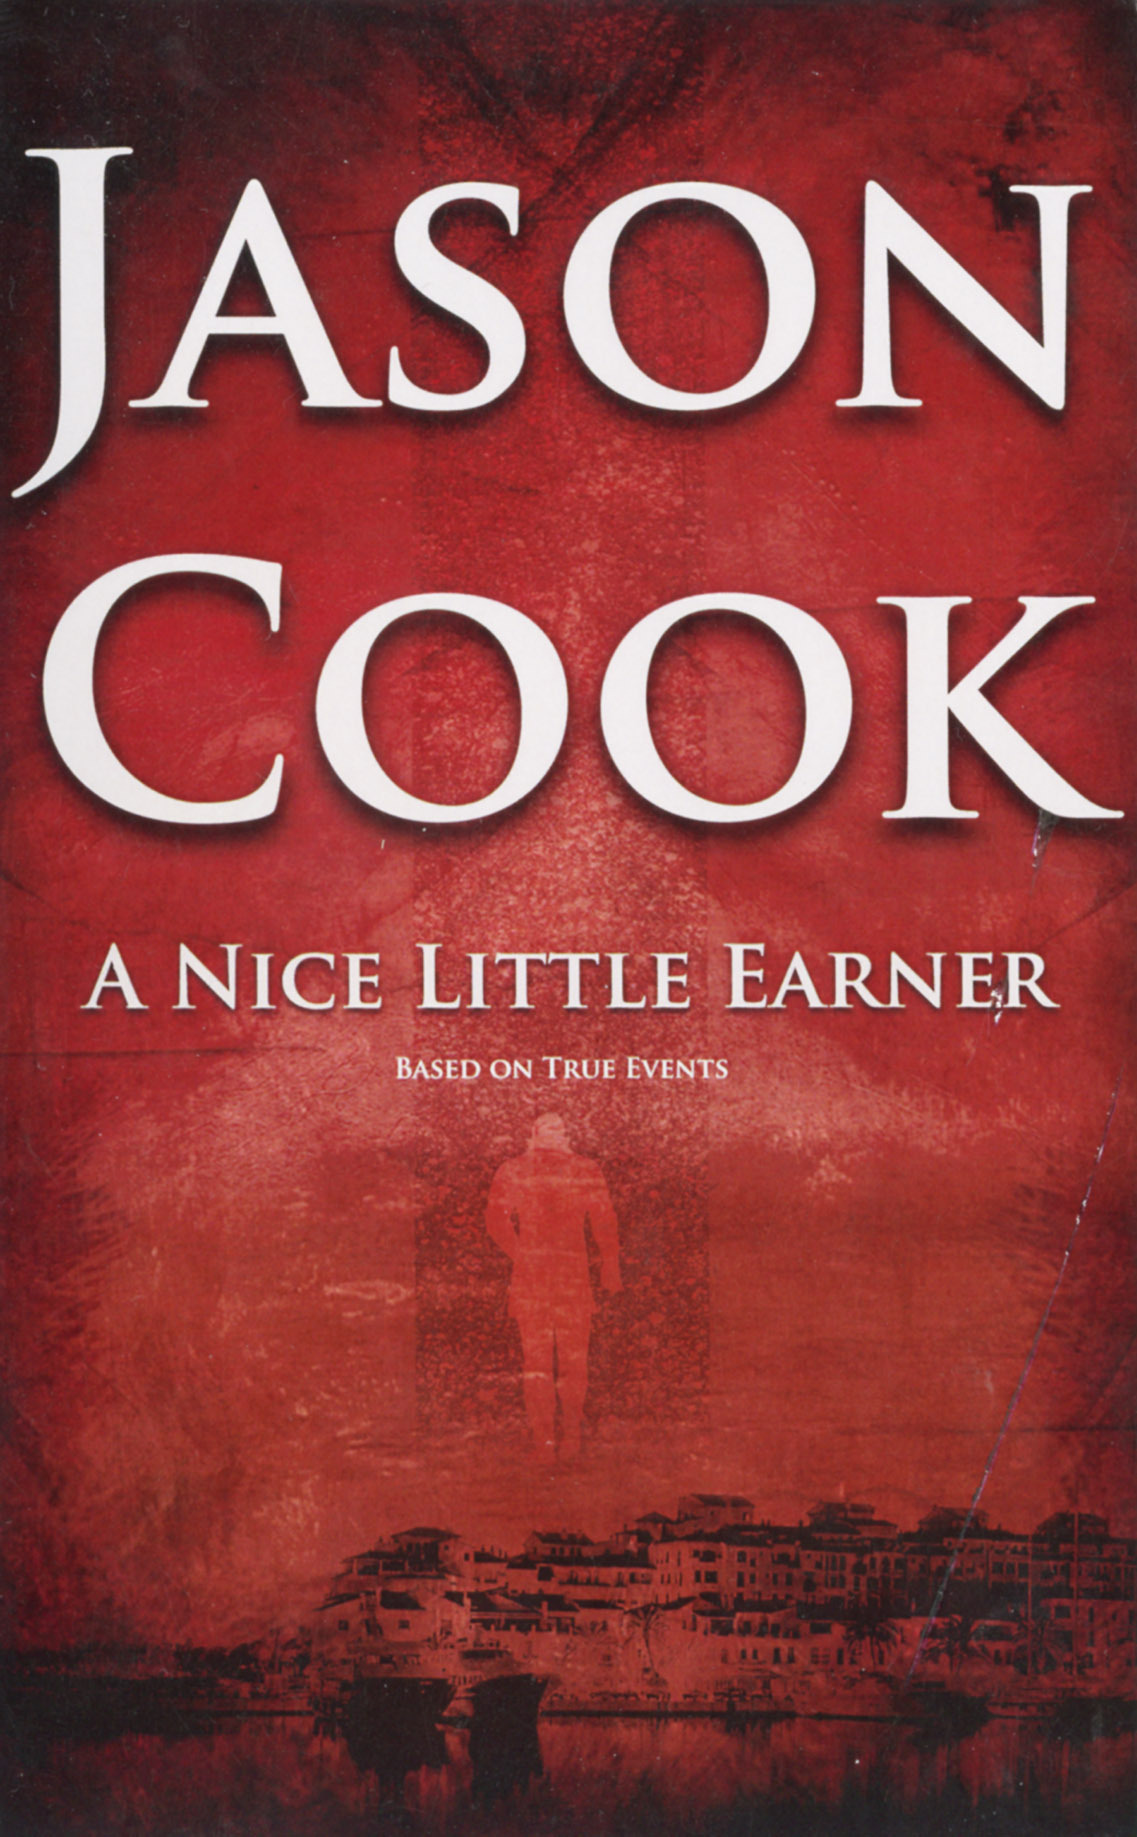 Jason recently published the third instalment in his series of four novels